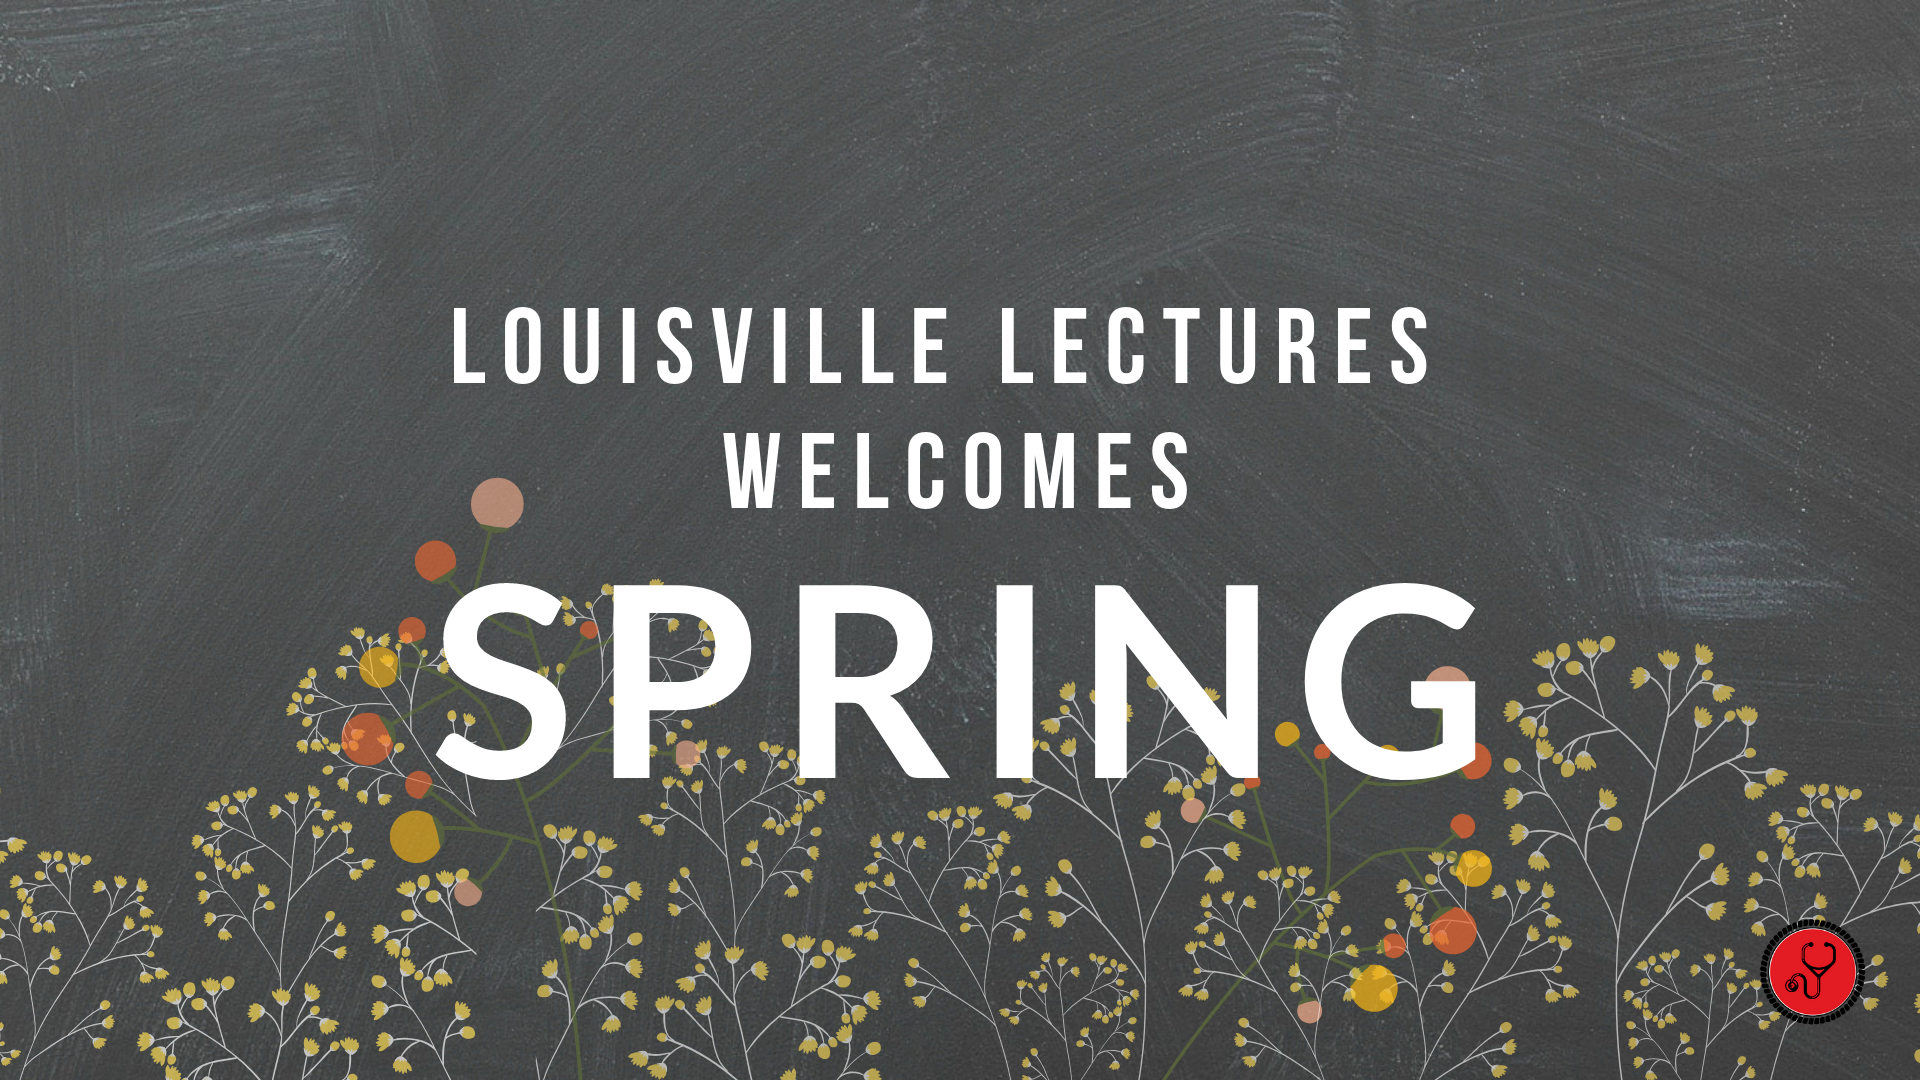 Spring is here! - Times flies and Louisville Lectures has had quite the year already. For the past few months we've been working hard to start and continue new adventures with Little Lectures, but we'd like to take a moment to give special attention to our first Internal Medicine Lectures. Spring is here and we'd like to highlight some of our favorite Allergy & Immunology Lectures. Check them out!